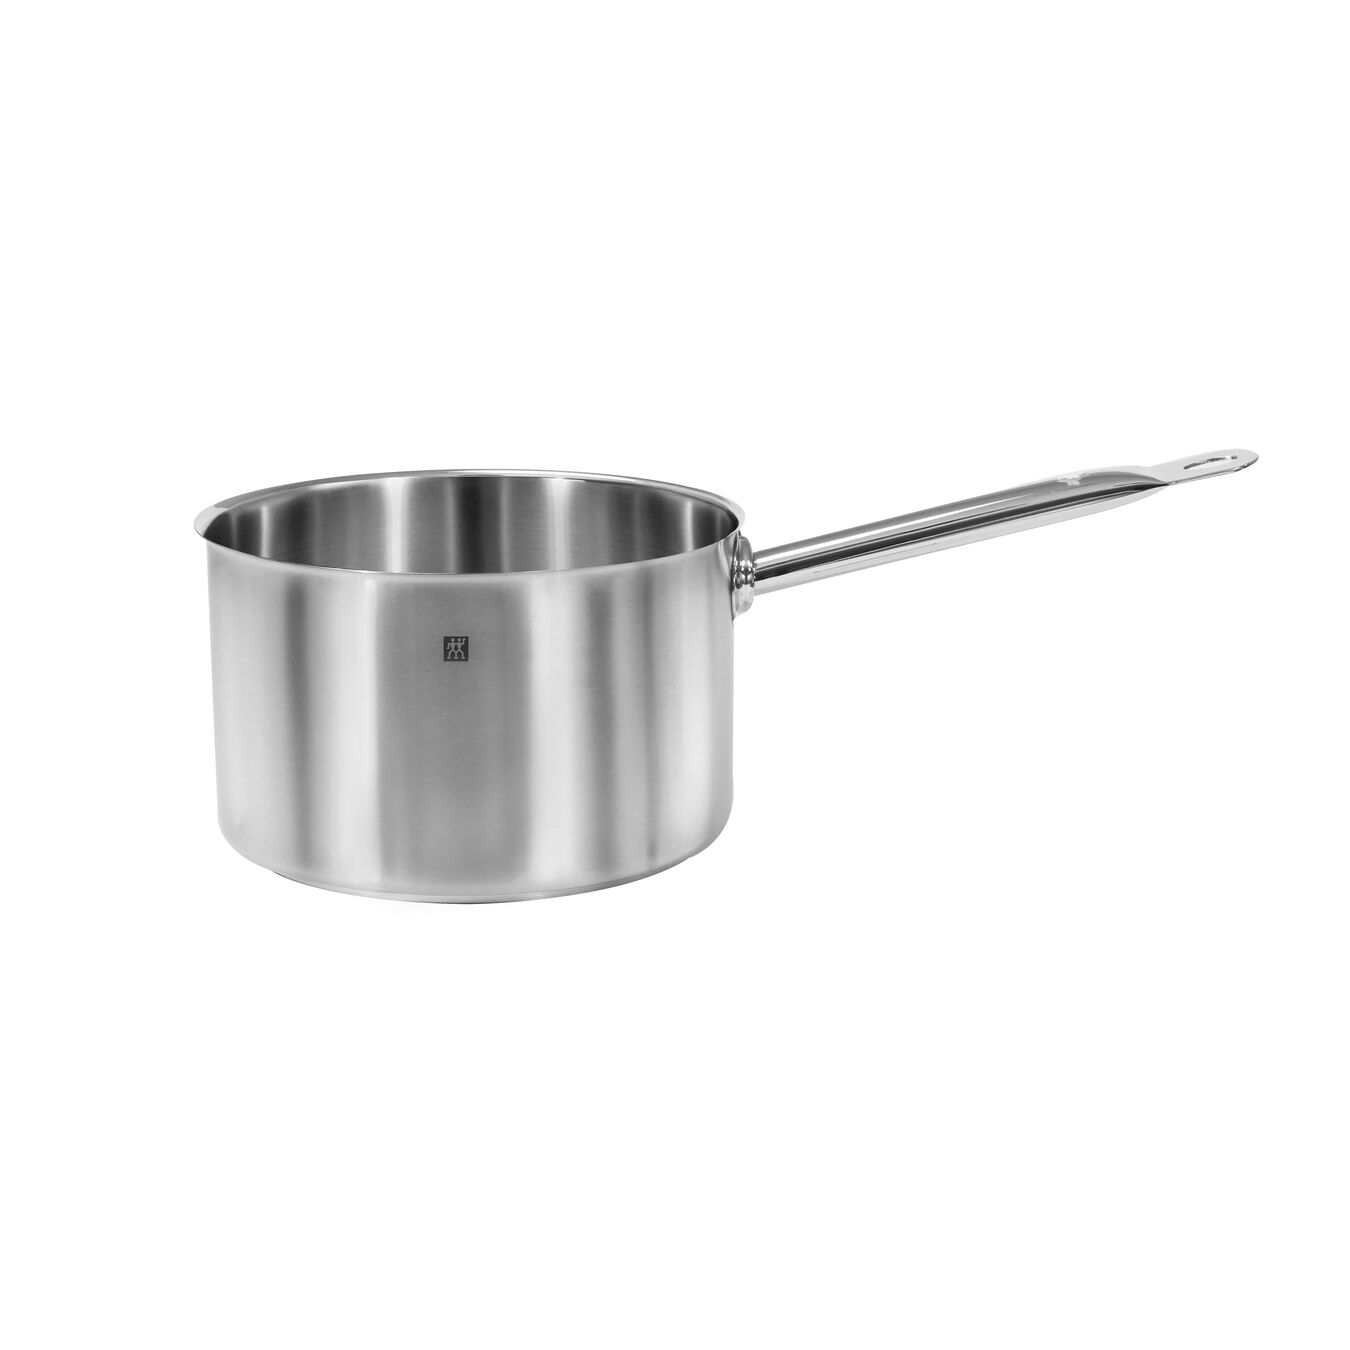 6.5L 18/10 STAINLESS STEEL SAUCE PAN,,large 1